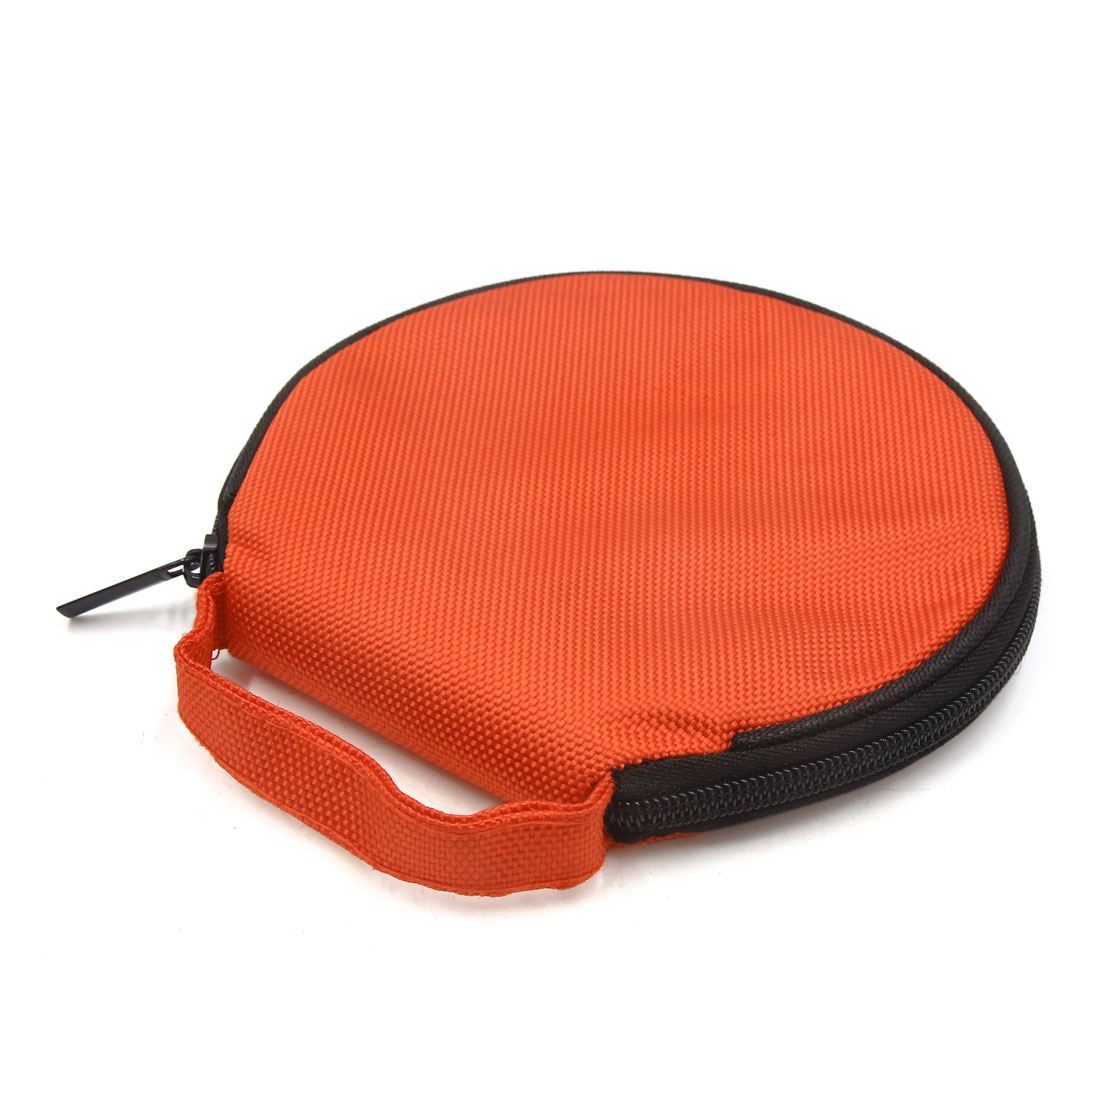 Orange Zipper Closure Round CD Disc Holder Bag Storage Carry Case Wallet for Car - image 1 de 3